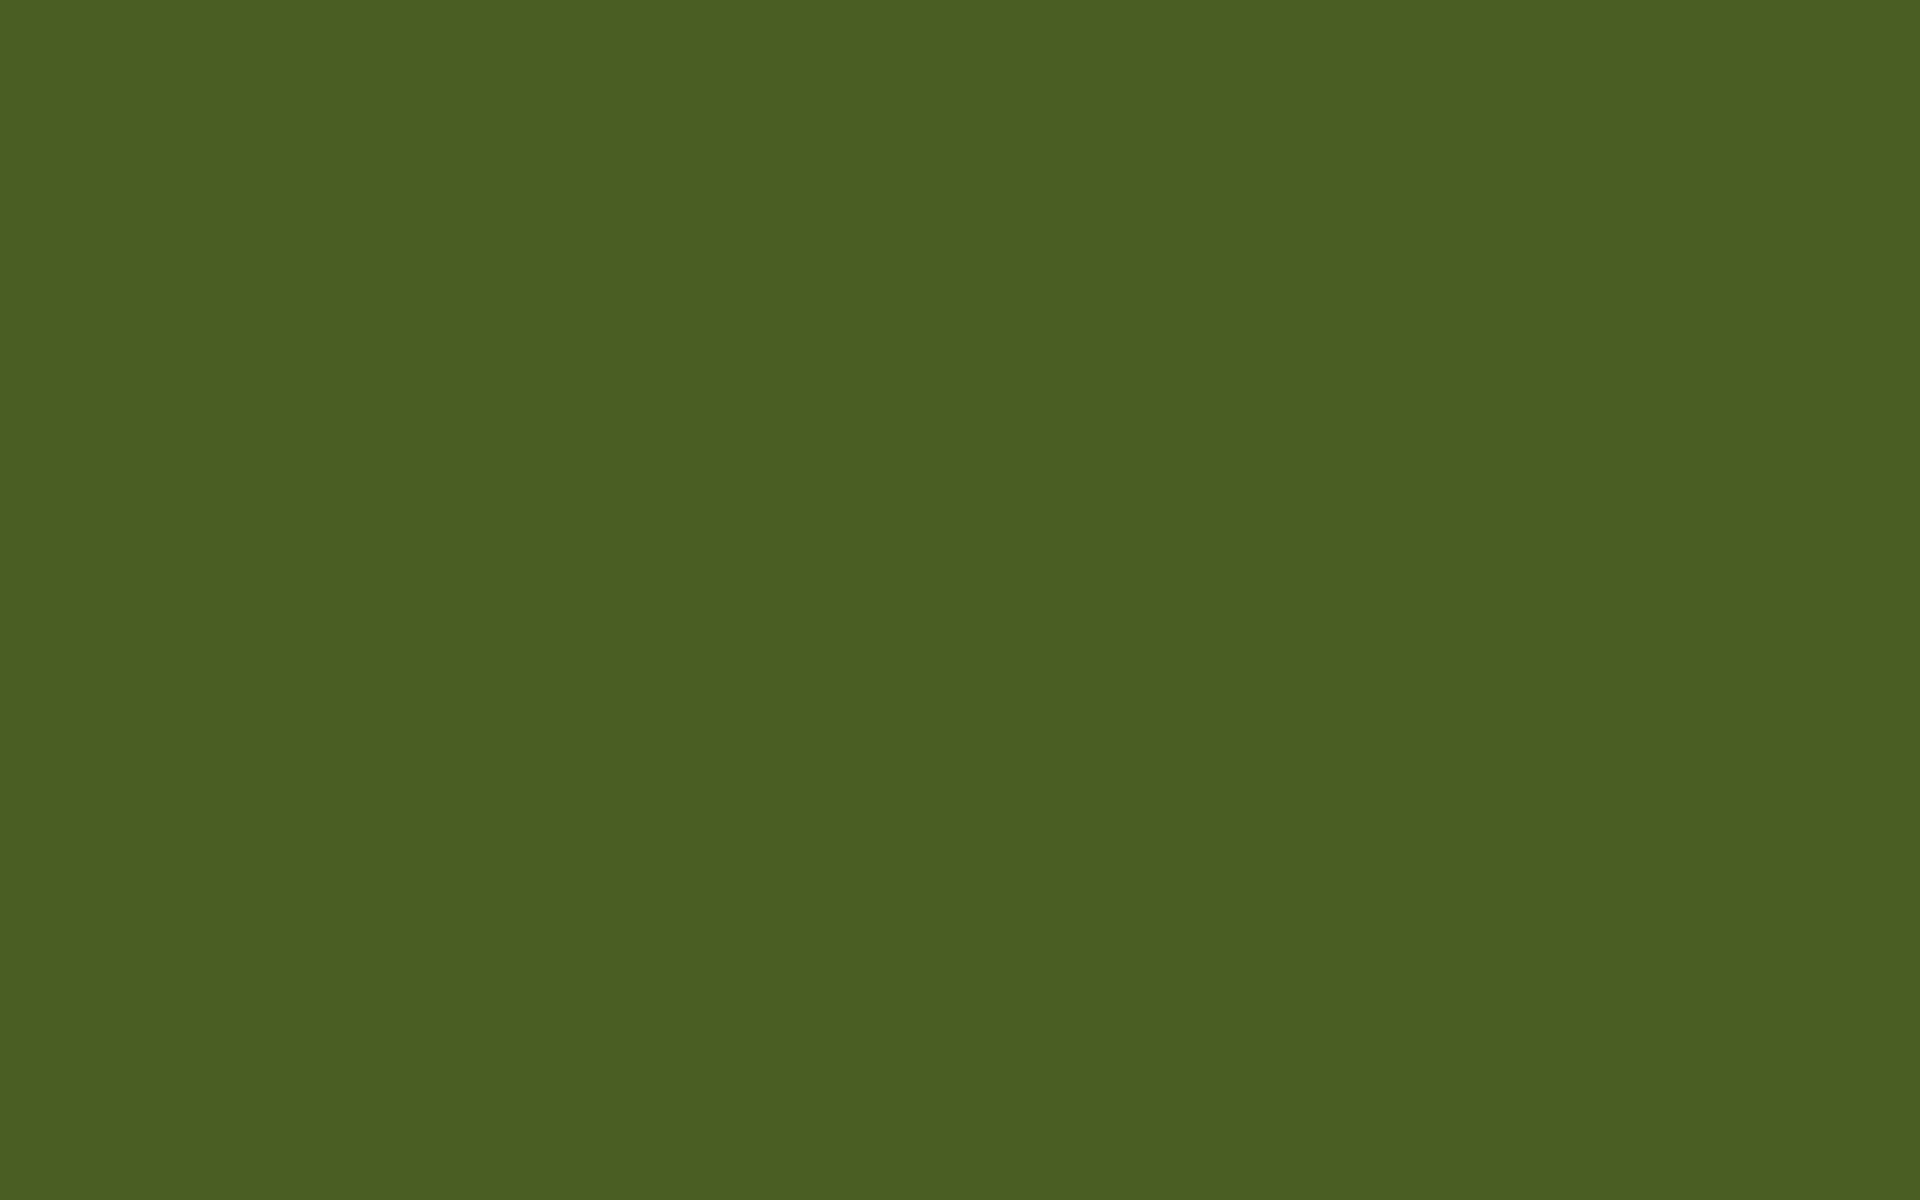 1920x1200 Dark Moss Green Solid Color Background